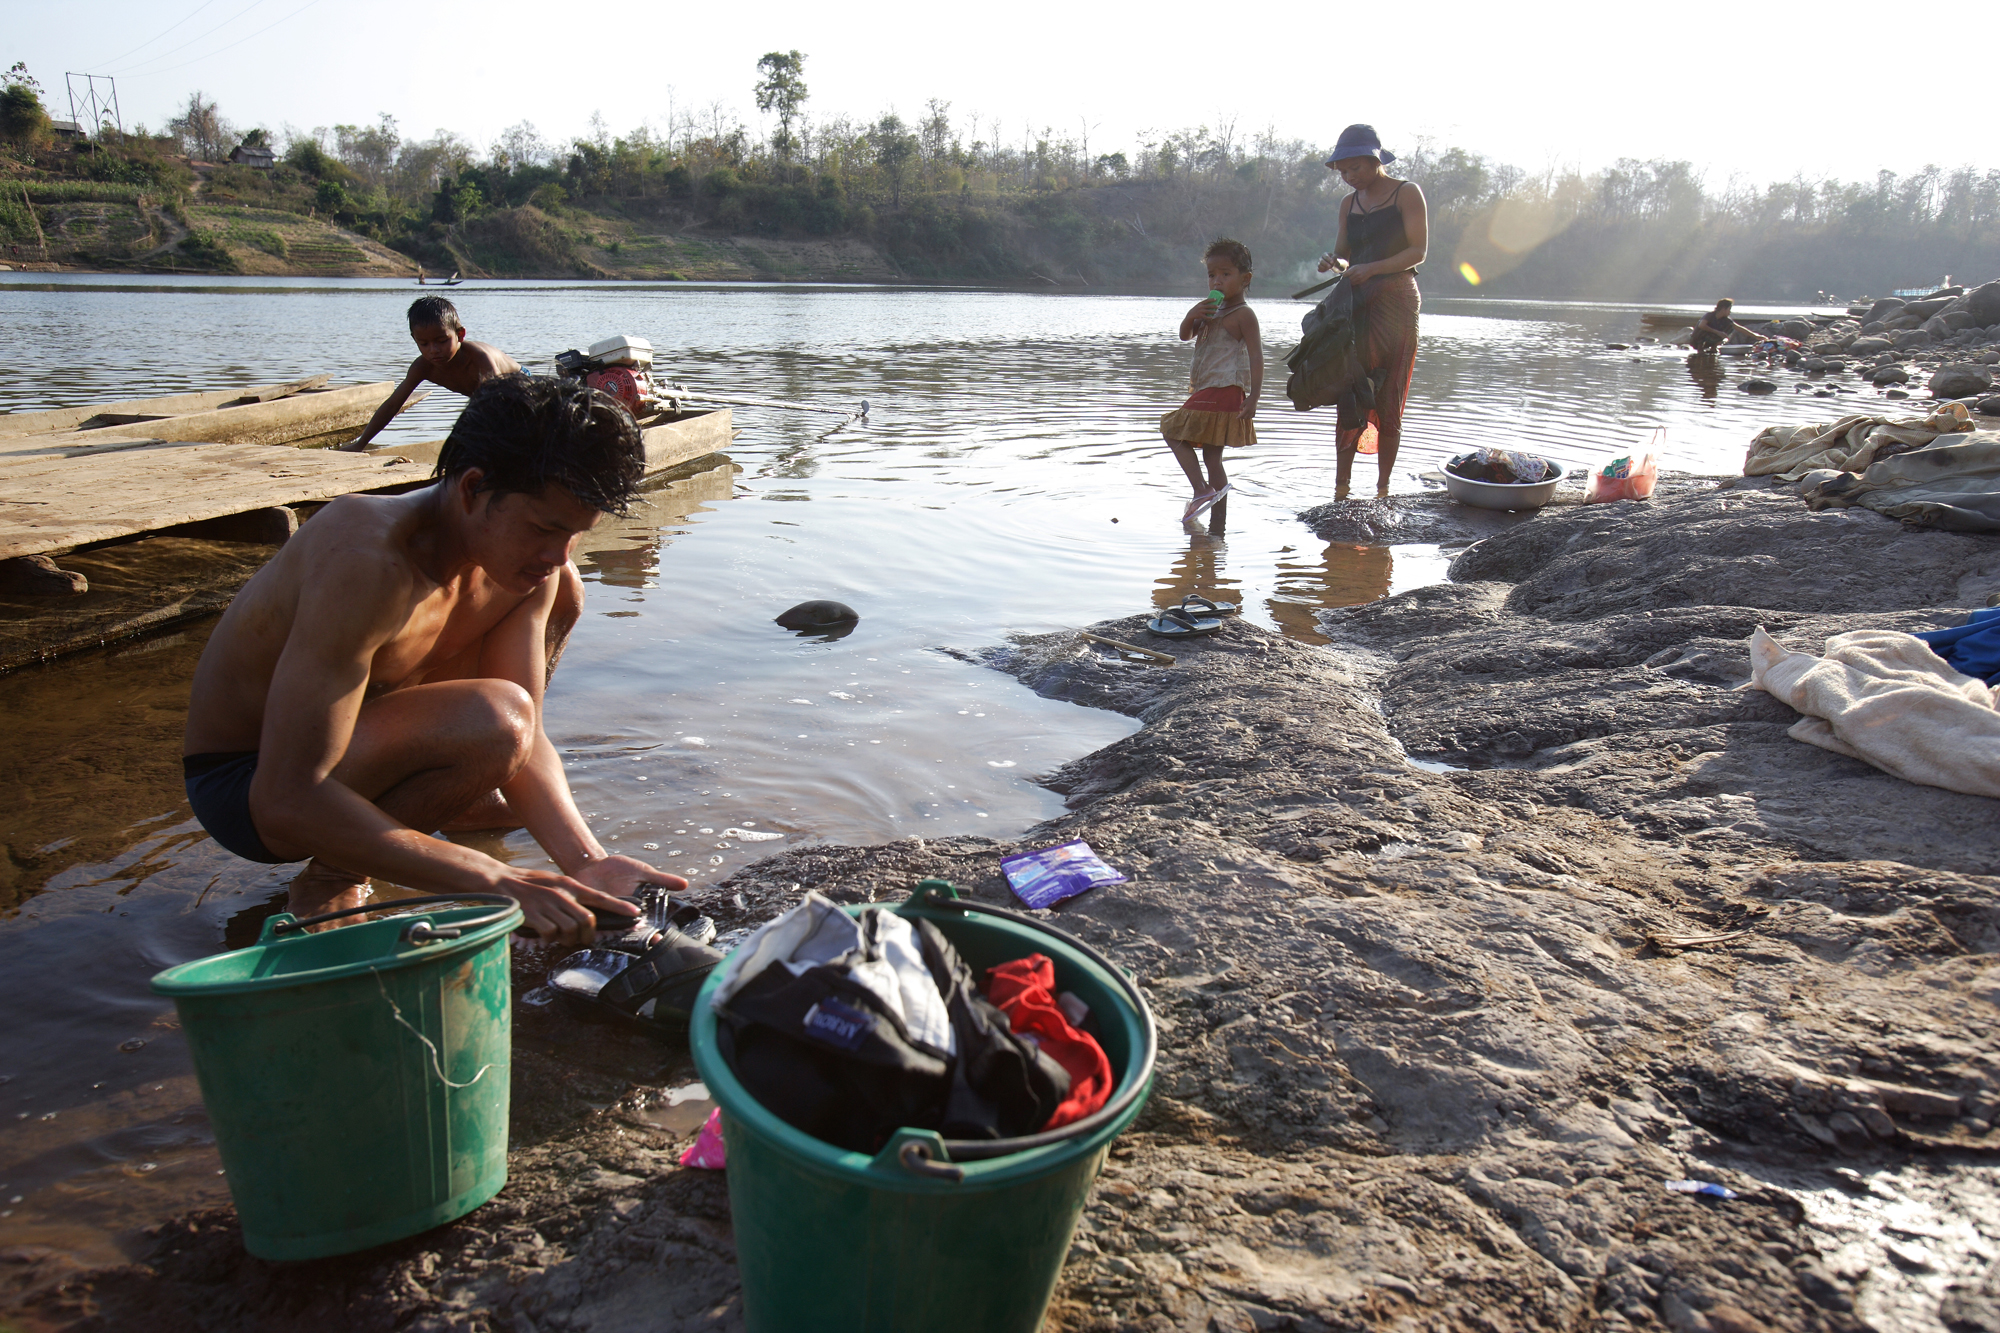 People bathe and do their laundry on the banks of the Sekong River in southern Laos before it joins the Mekong River. Photo by Jim Holmes for AusAID